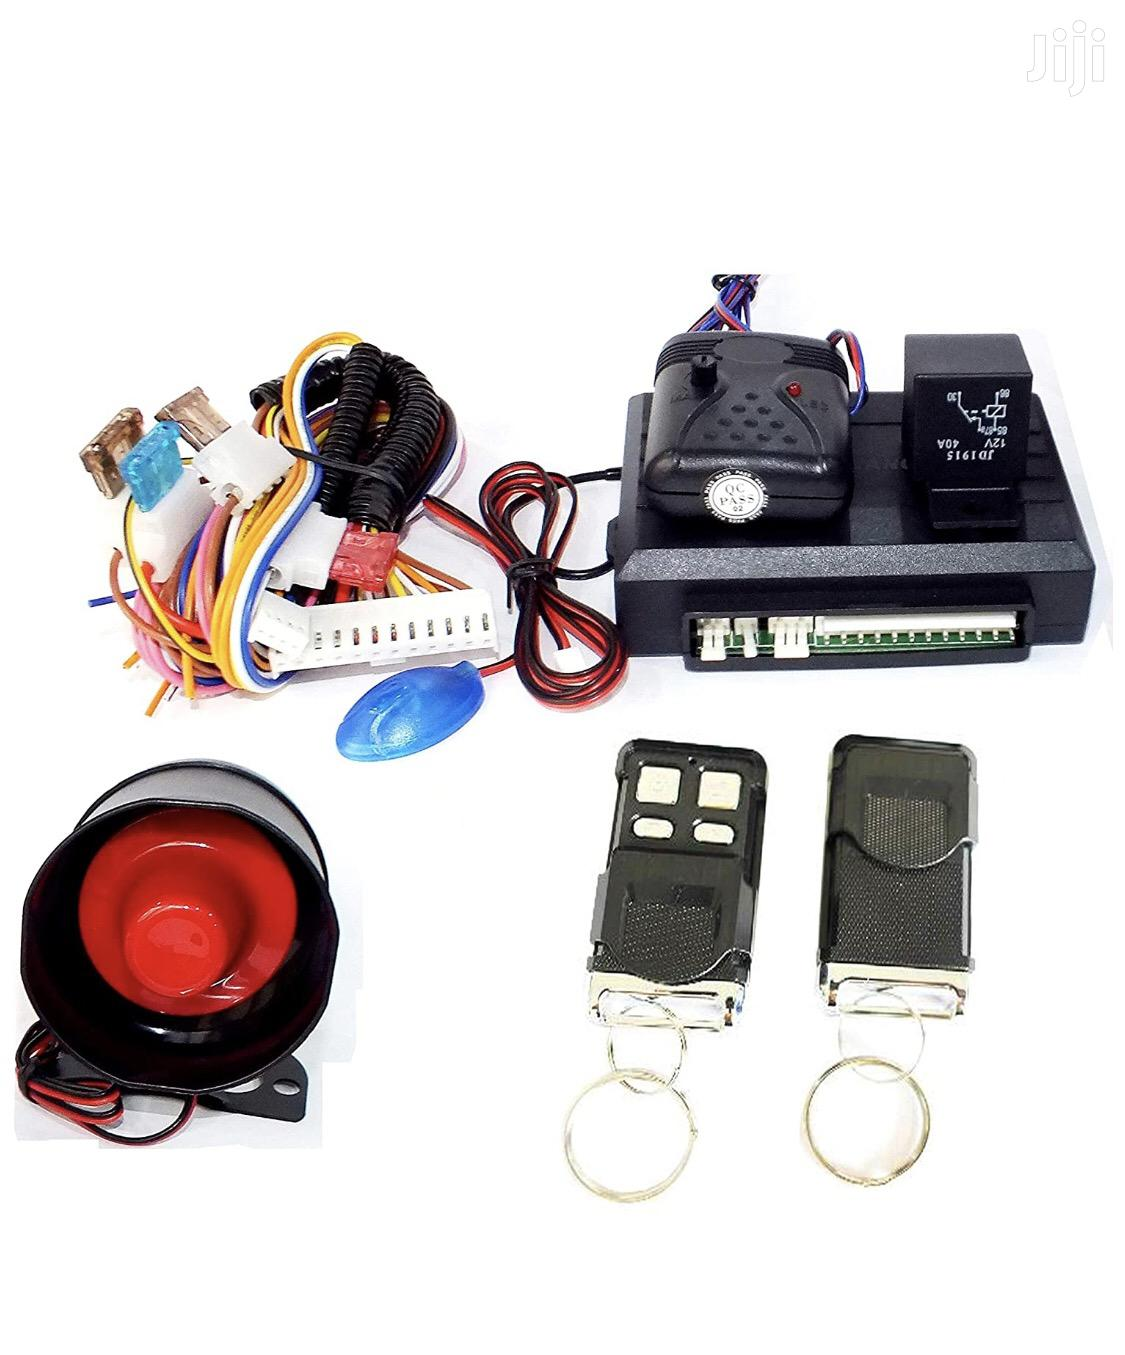 Archive: Universal Car Alarm With 2 Remote Control Key